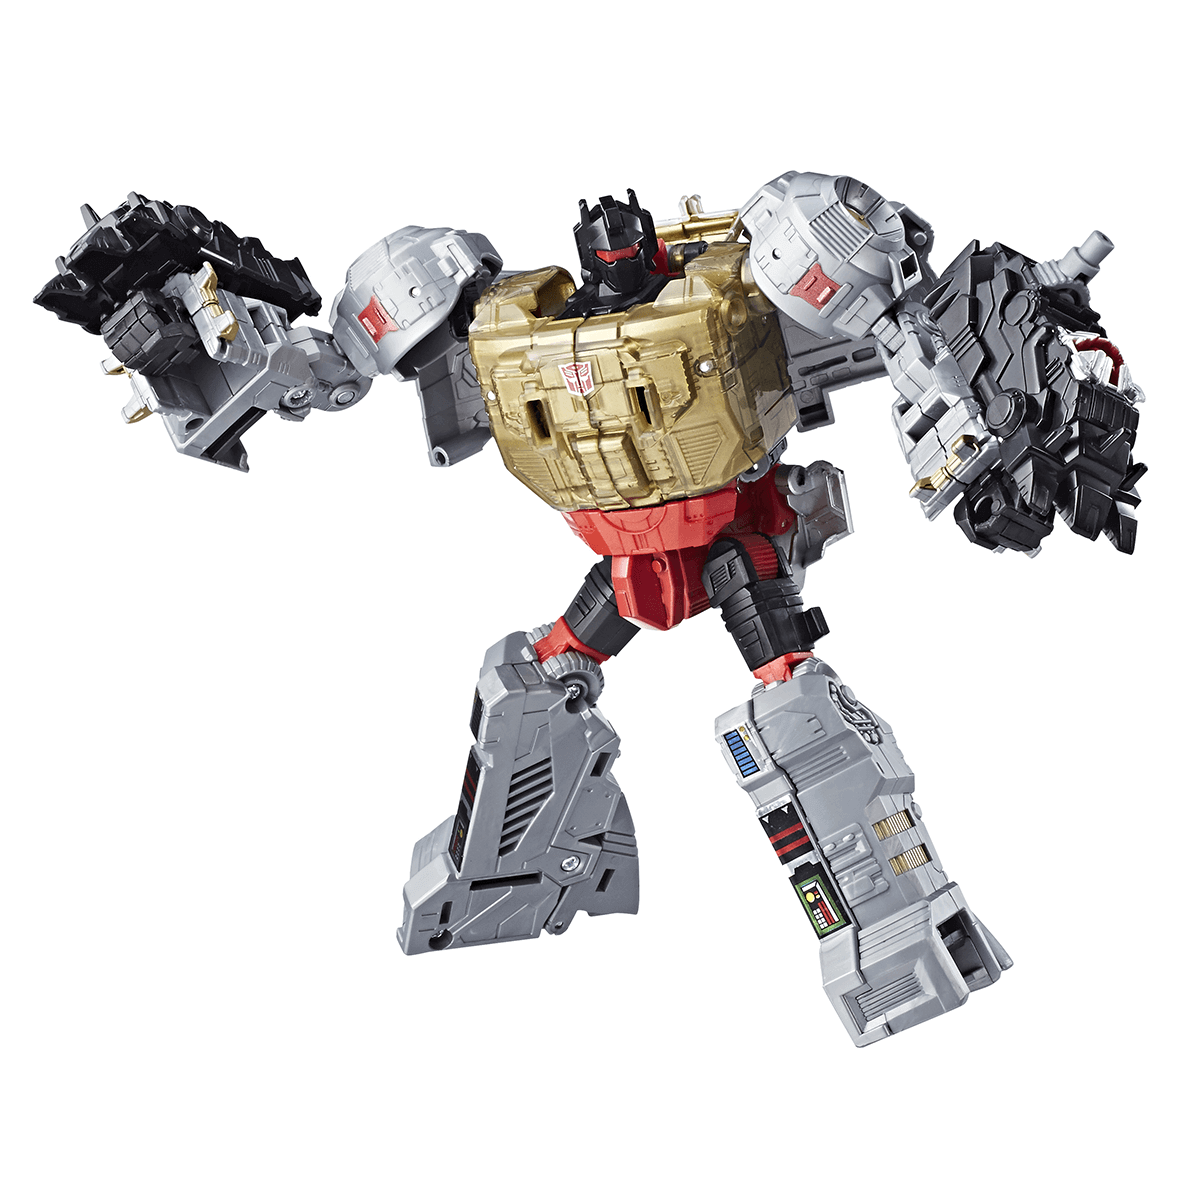 Transformers Generations Power of the Primes Voyager Class Figure Dinobot Grimlock